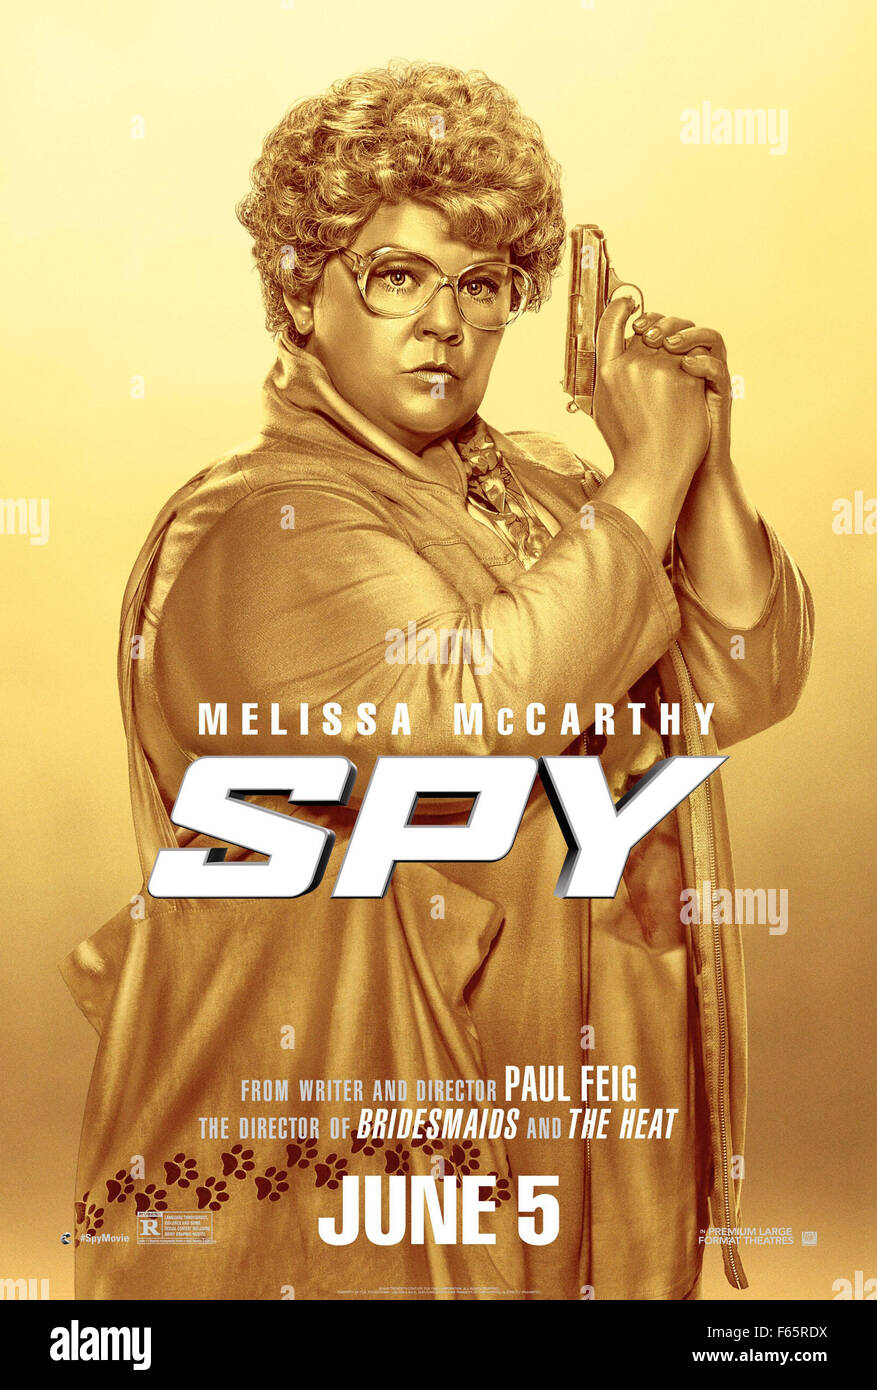 Spy Year : 2015 USA Director : Paul Feig Melissa McCarthy Movie poster (USA) - Stock Image